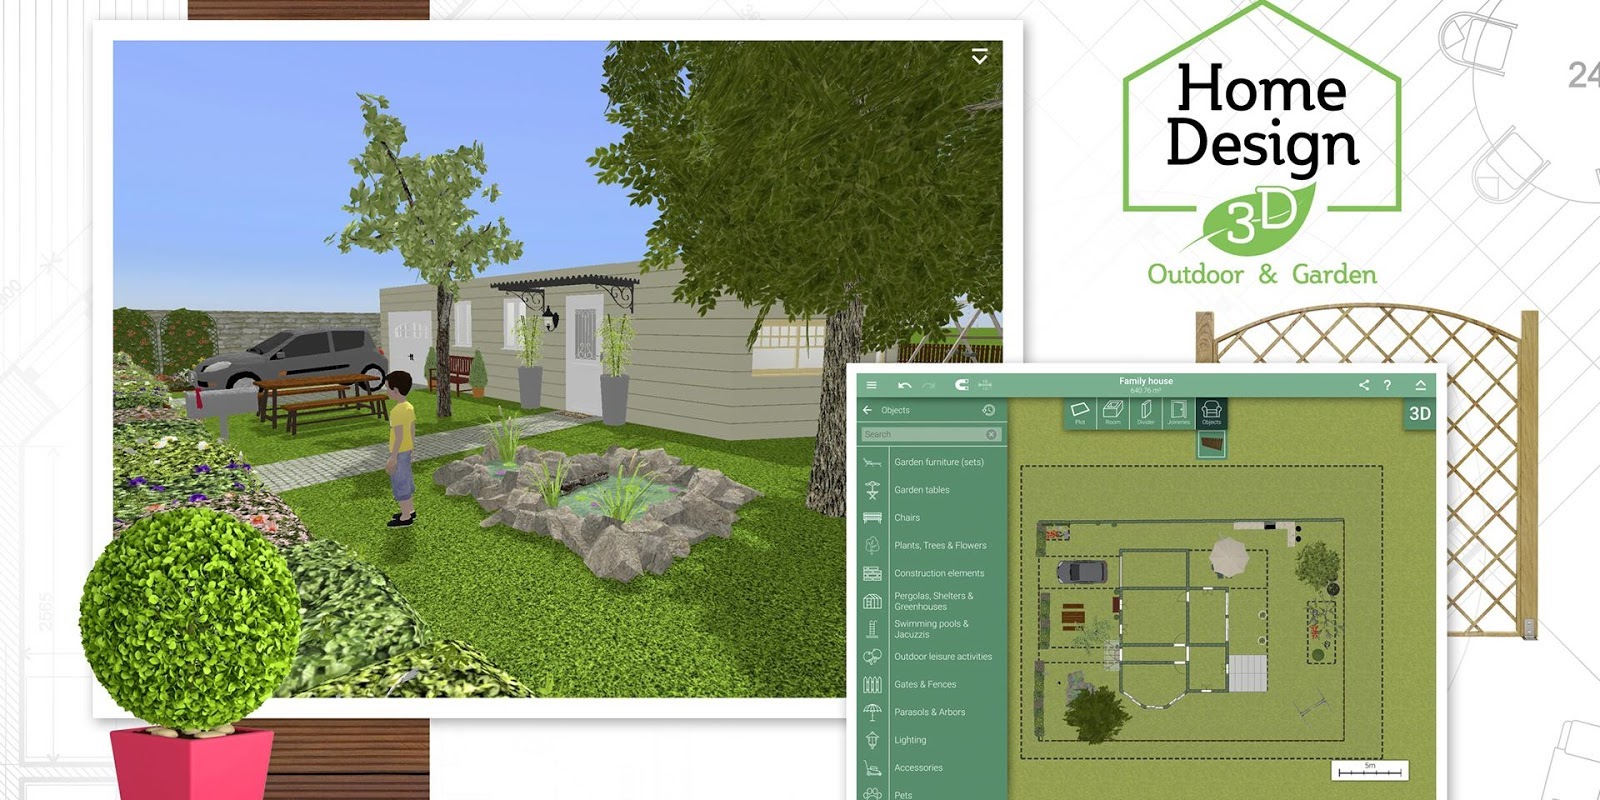 Create The Outdoor Space Of Your Dreams W/ Home Design 3D For IOS: $1 (Reg.  $5)